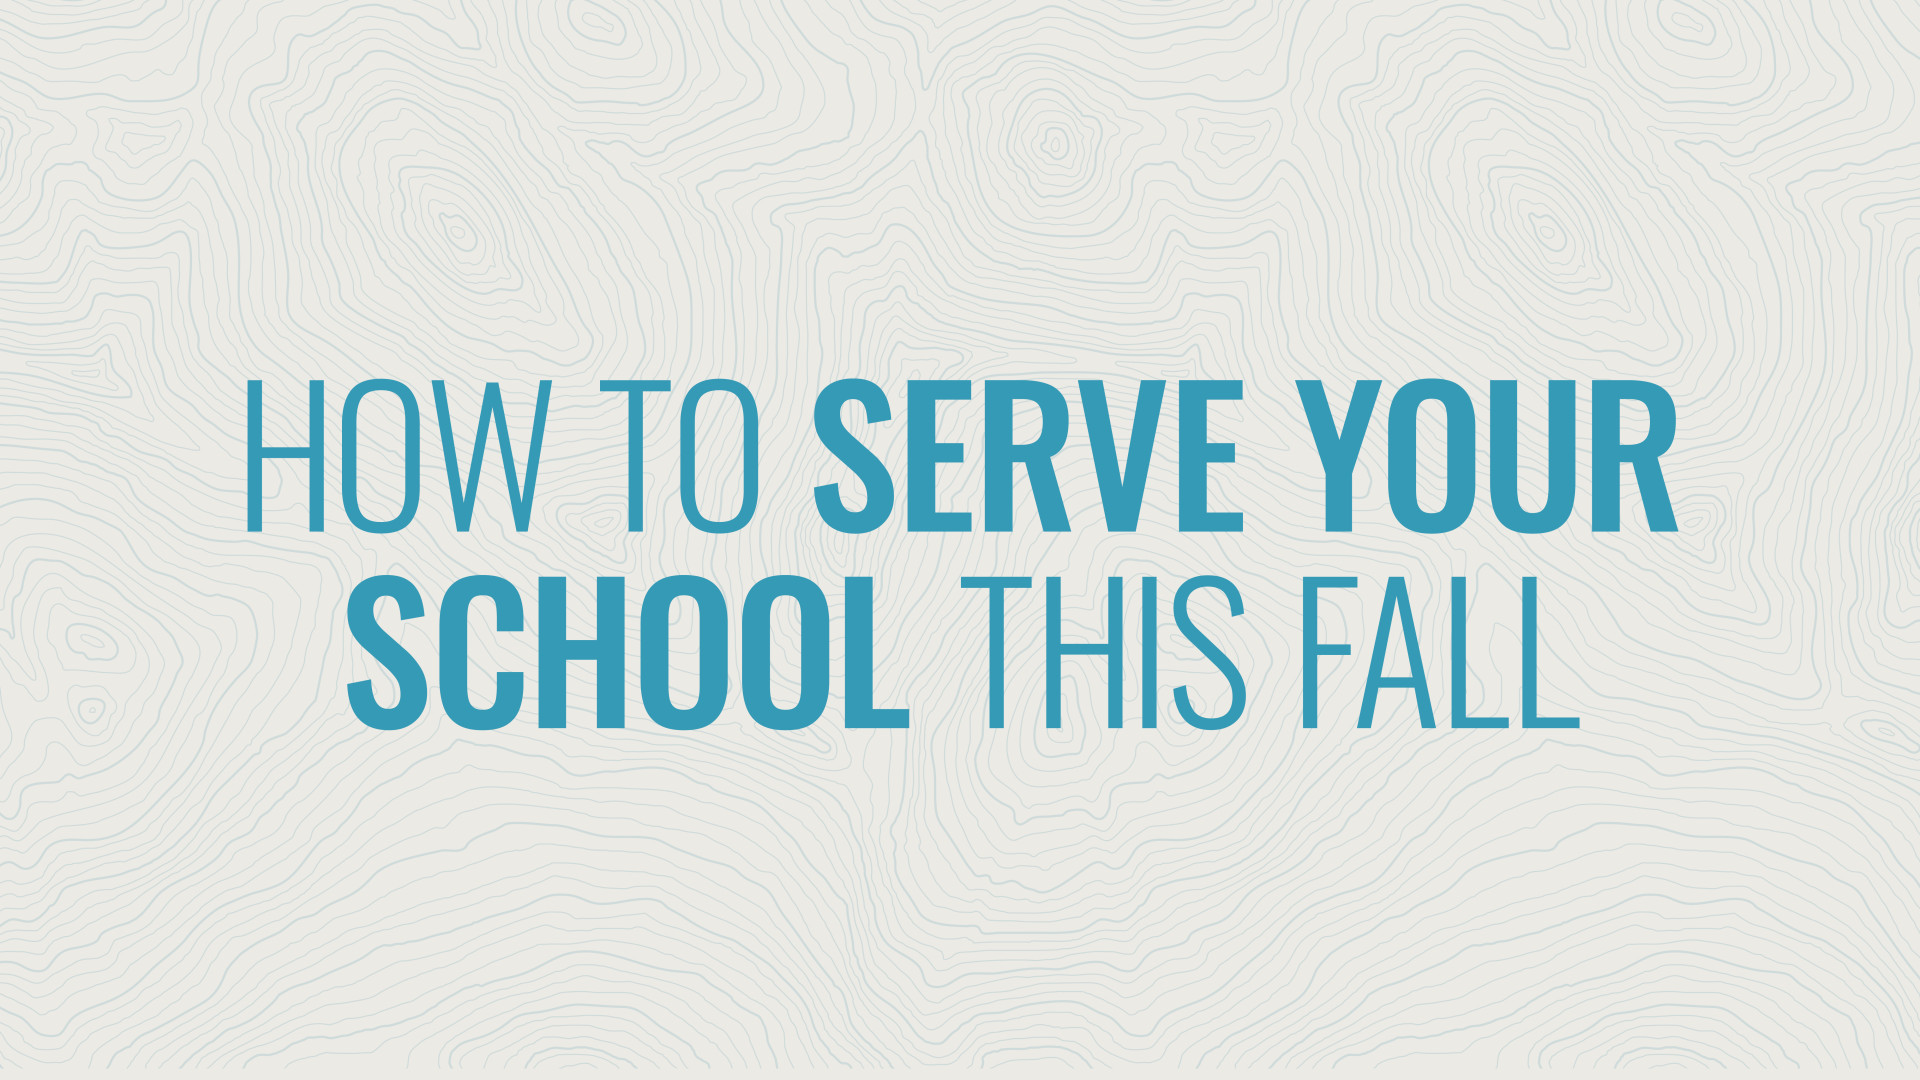 How to Serve Your School This Fall Hero Image